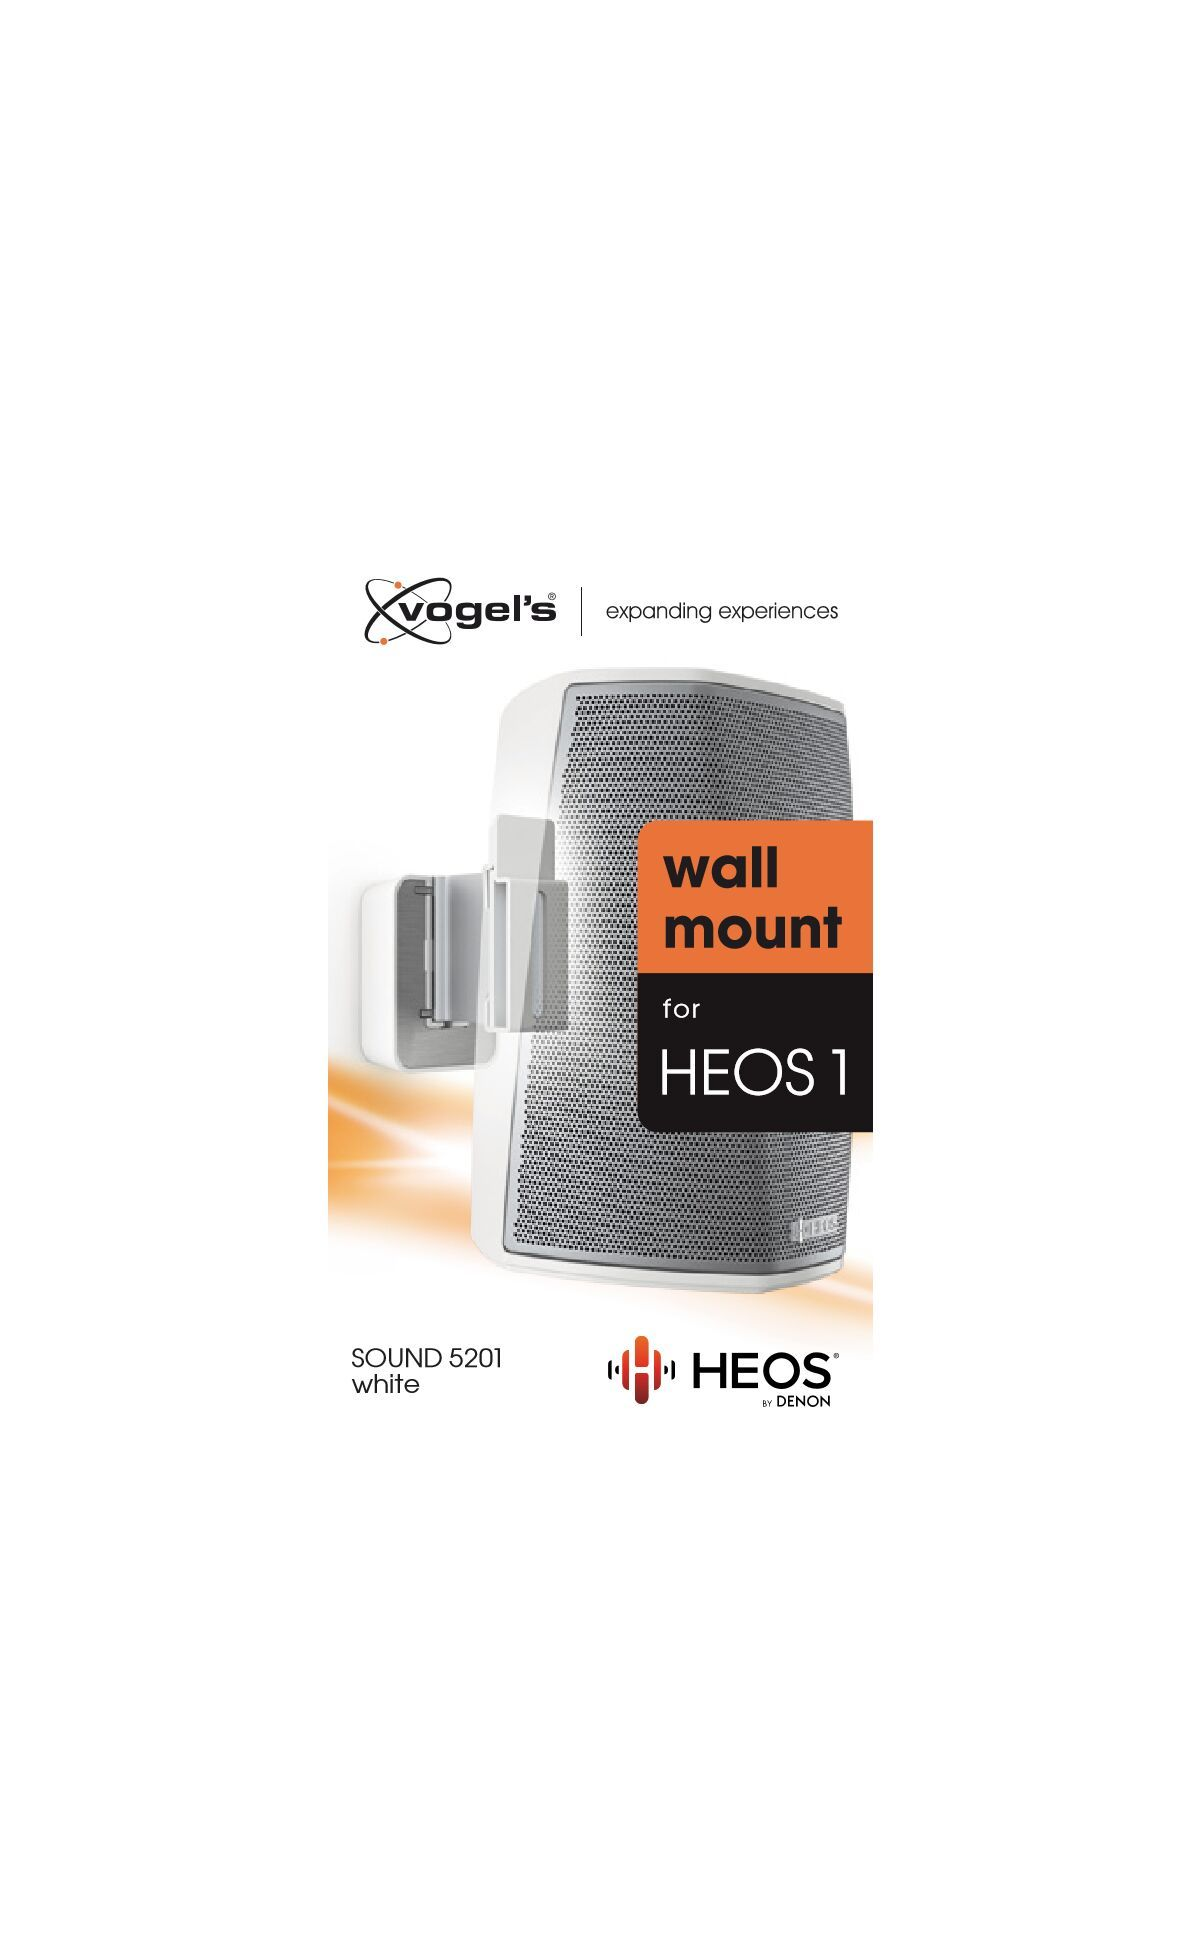 Vogel's SOUND 5201 Speaker Wall Mount for Denon HEOS 1 (white) - Packaging front